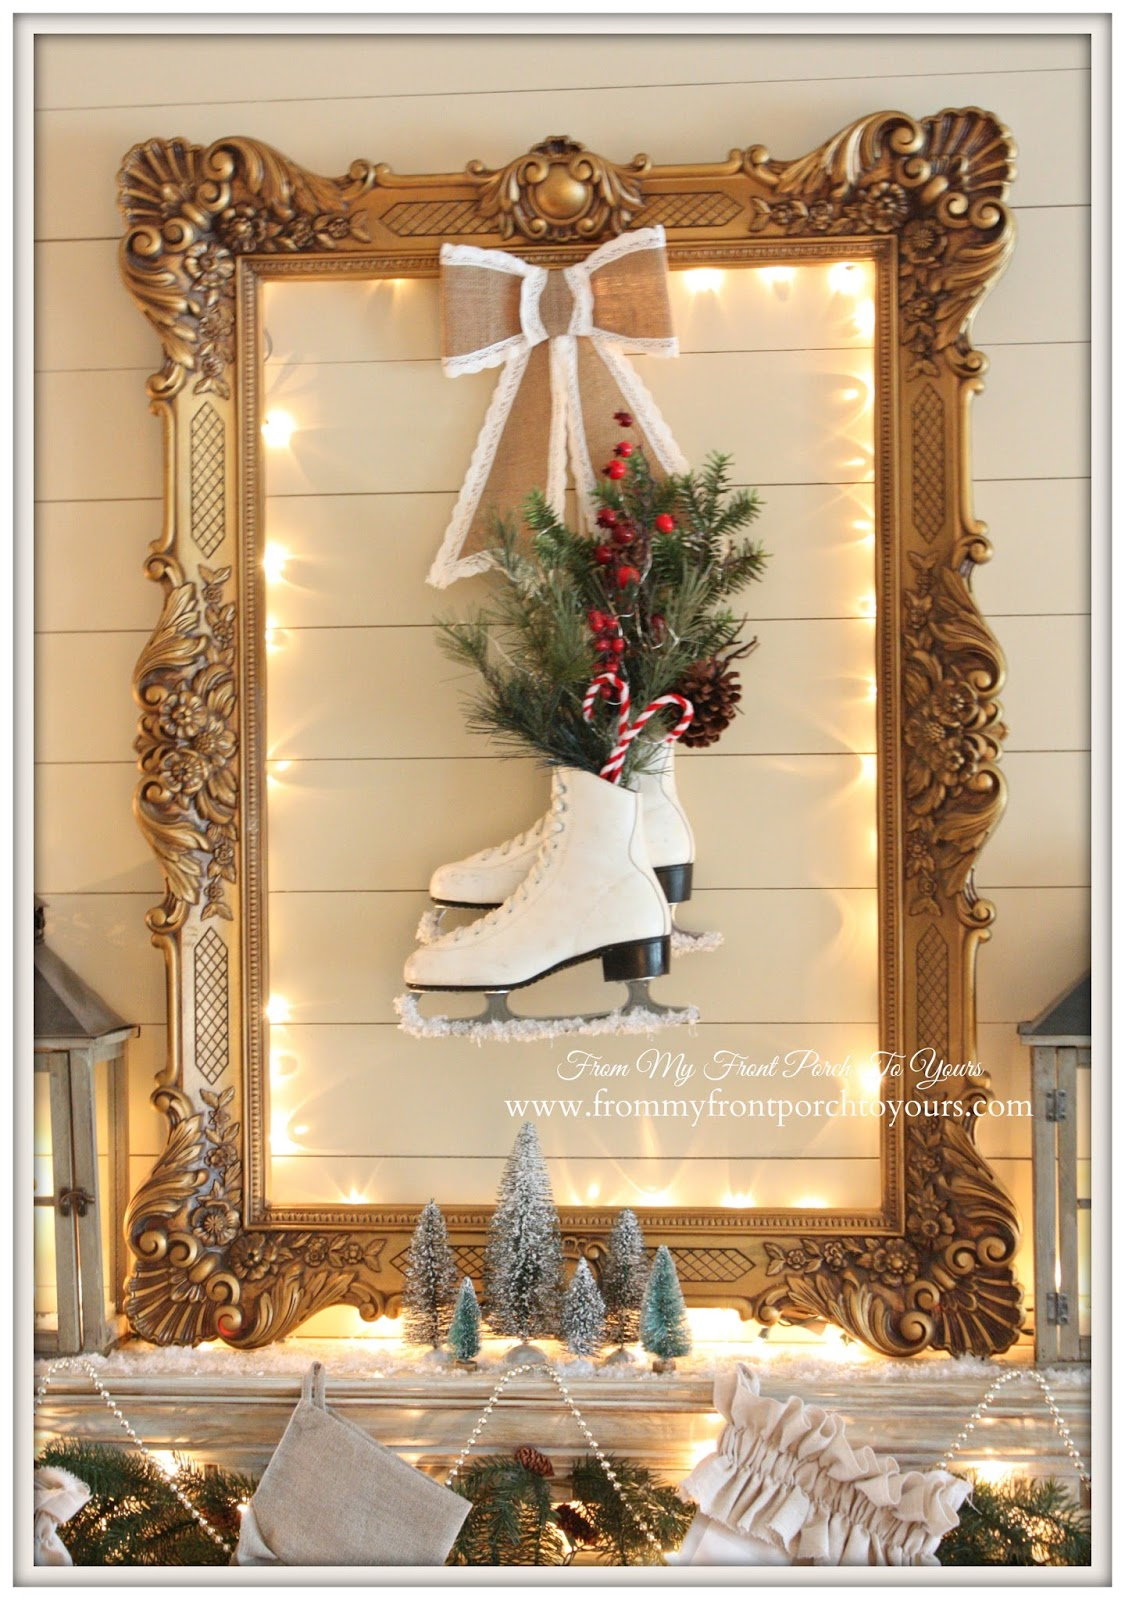 Ice Skates-Christmas Mantel 2014- French Country-Farmhouse-From My Front Porch To Yours